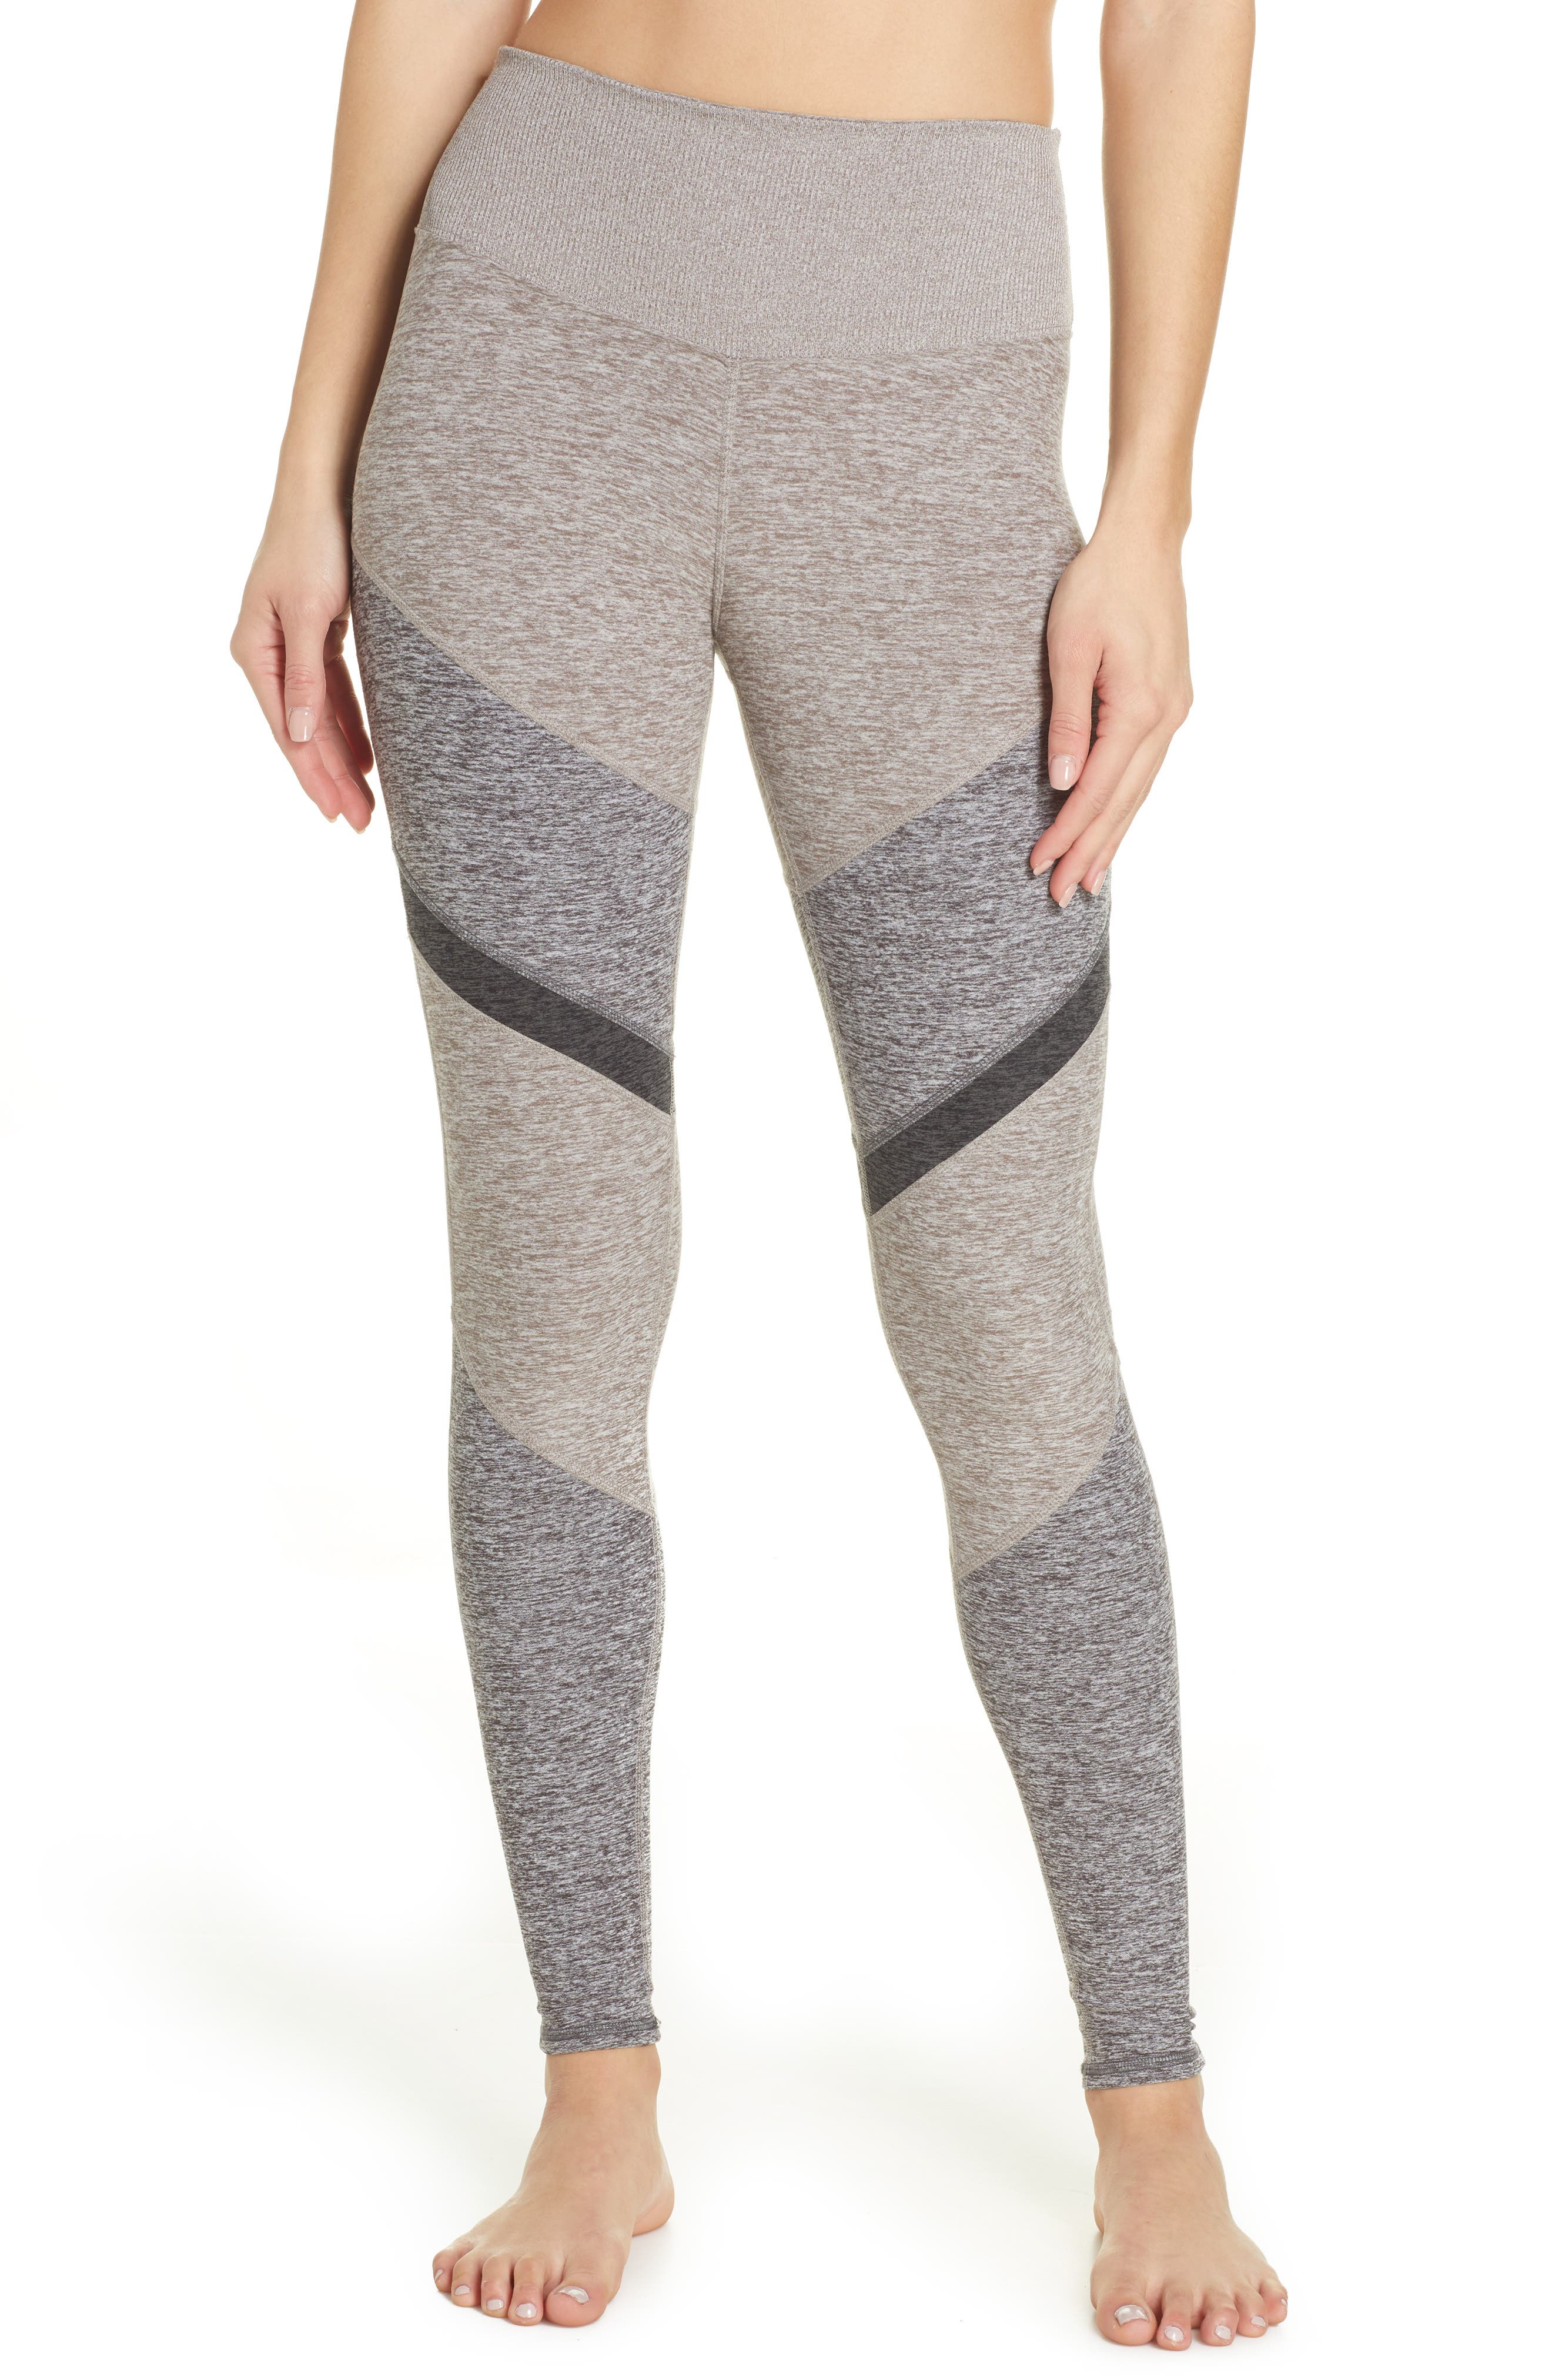 ALO, Sheila Alosoft High Waist Leggings, Main thumbnail 1, color, GRAVEL HEATHER/ DOVE GREY